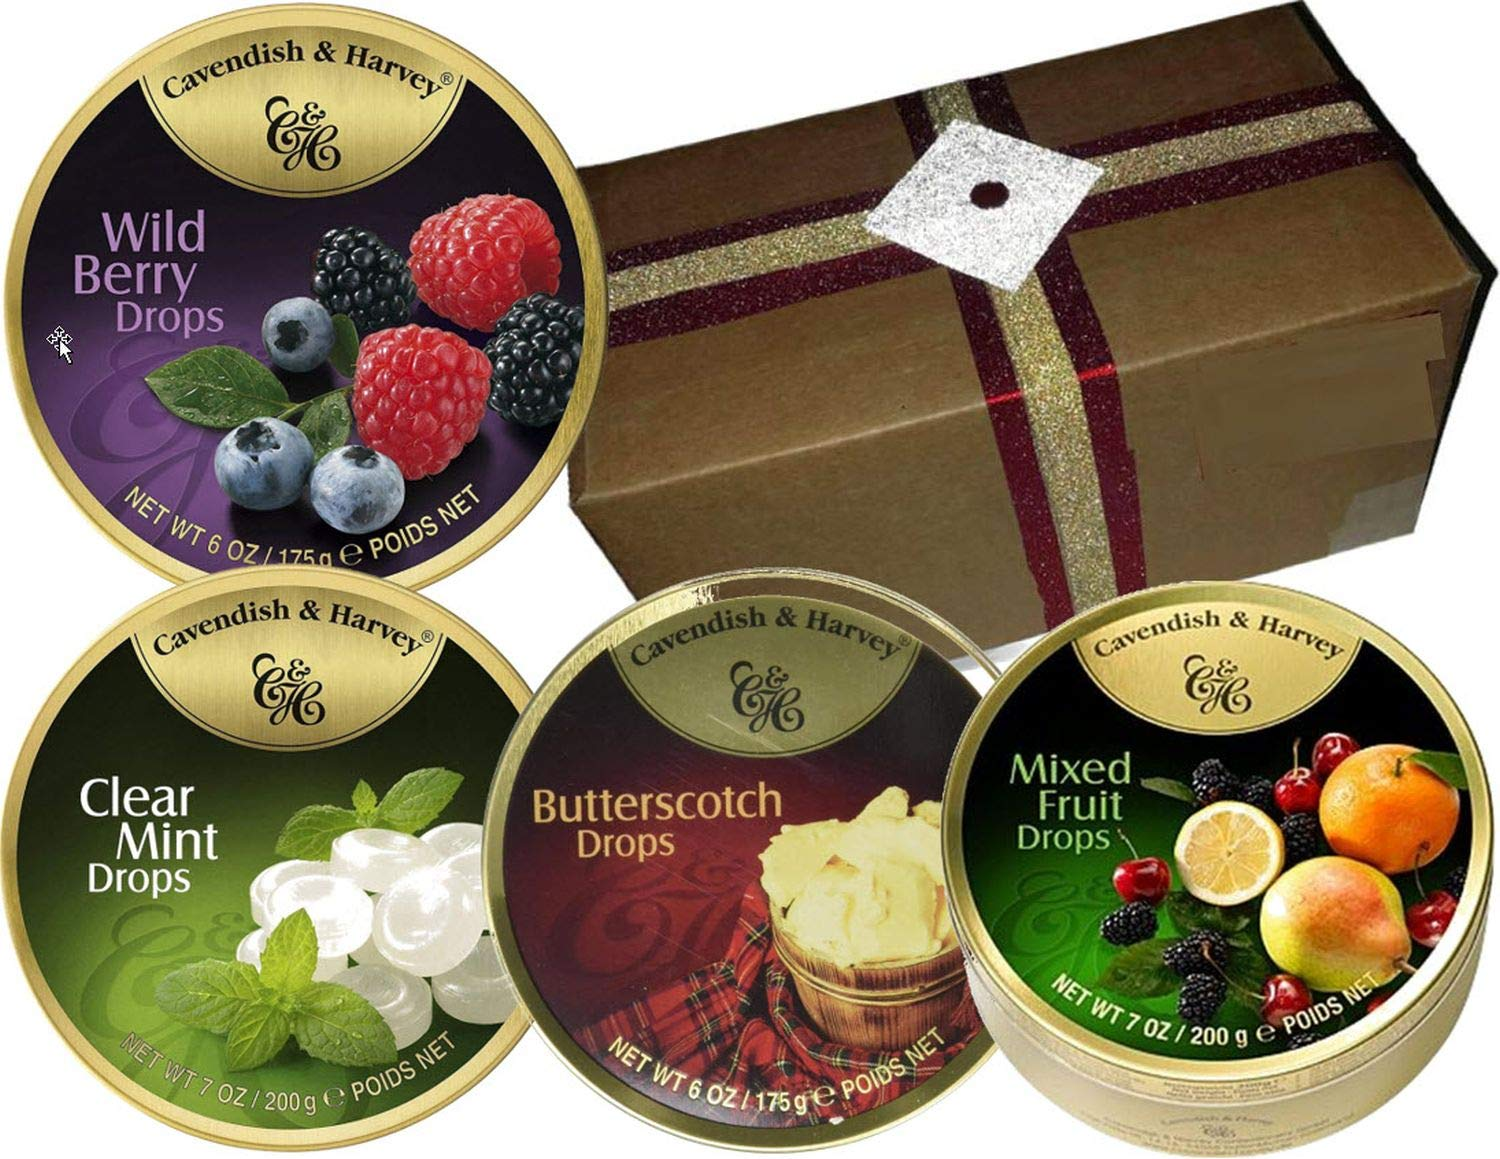 CDM product Festive Cavendish and Harvey European Candy Tins Assortment in a Specially Designed Gift Box (Mixed Fruit-Butterscotch-Clear Mint-Wild Berries, 4 Tins) big image